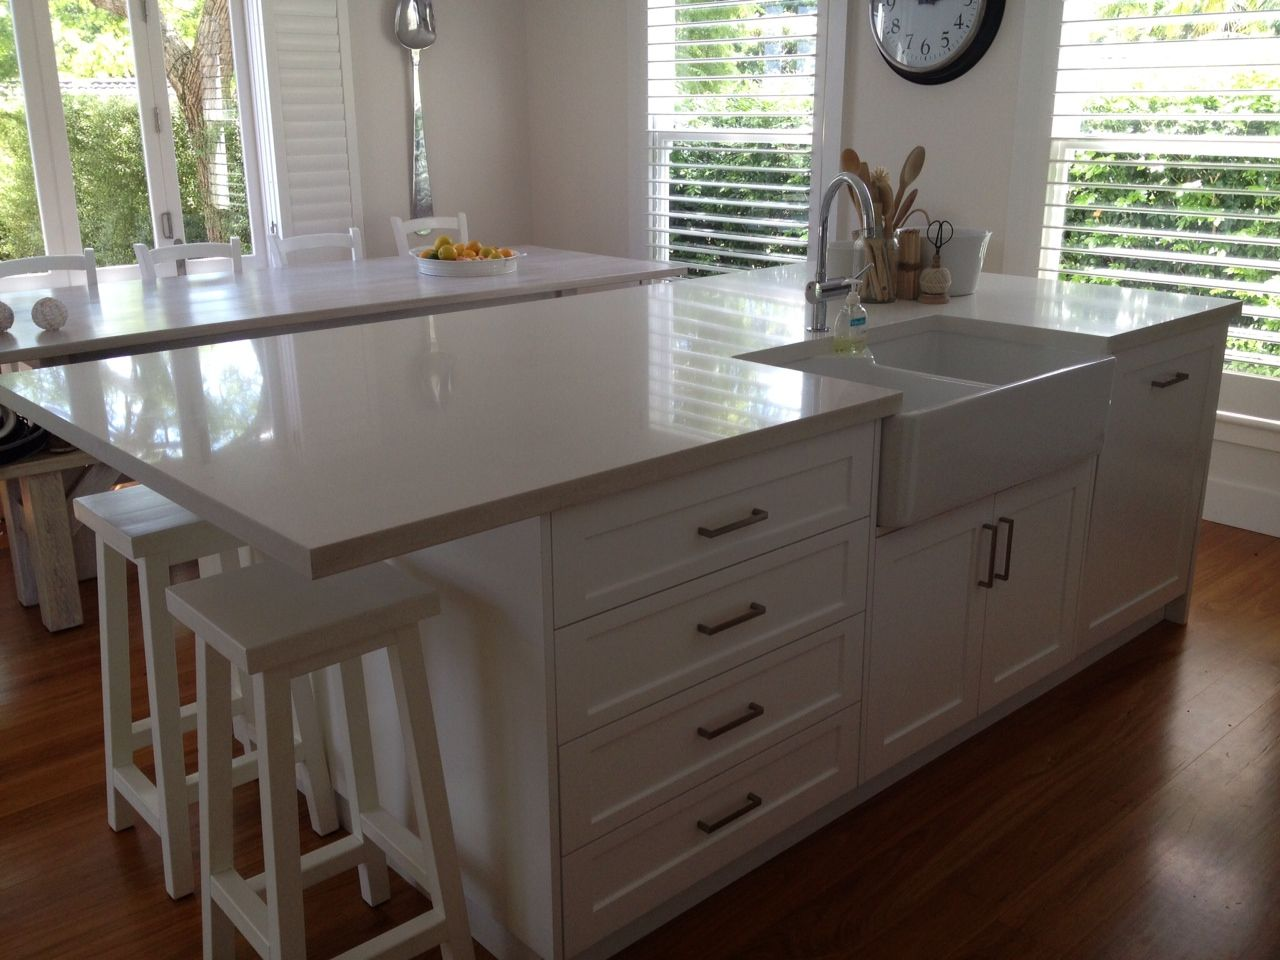 Kitchen Sink Island Pretty Design 14 The End Island With